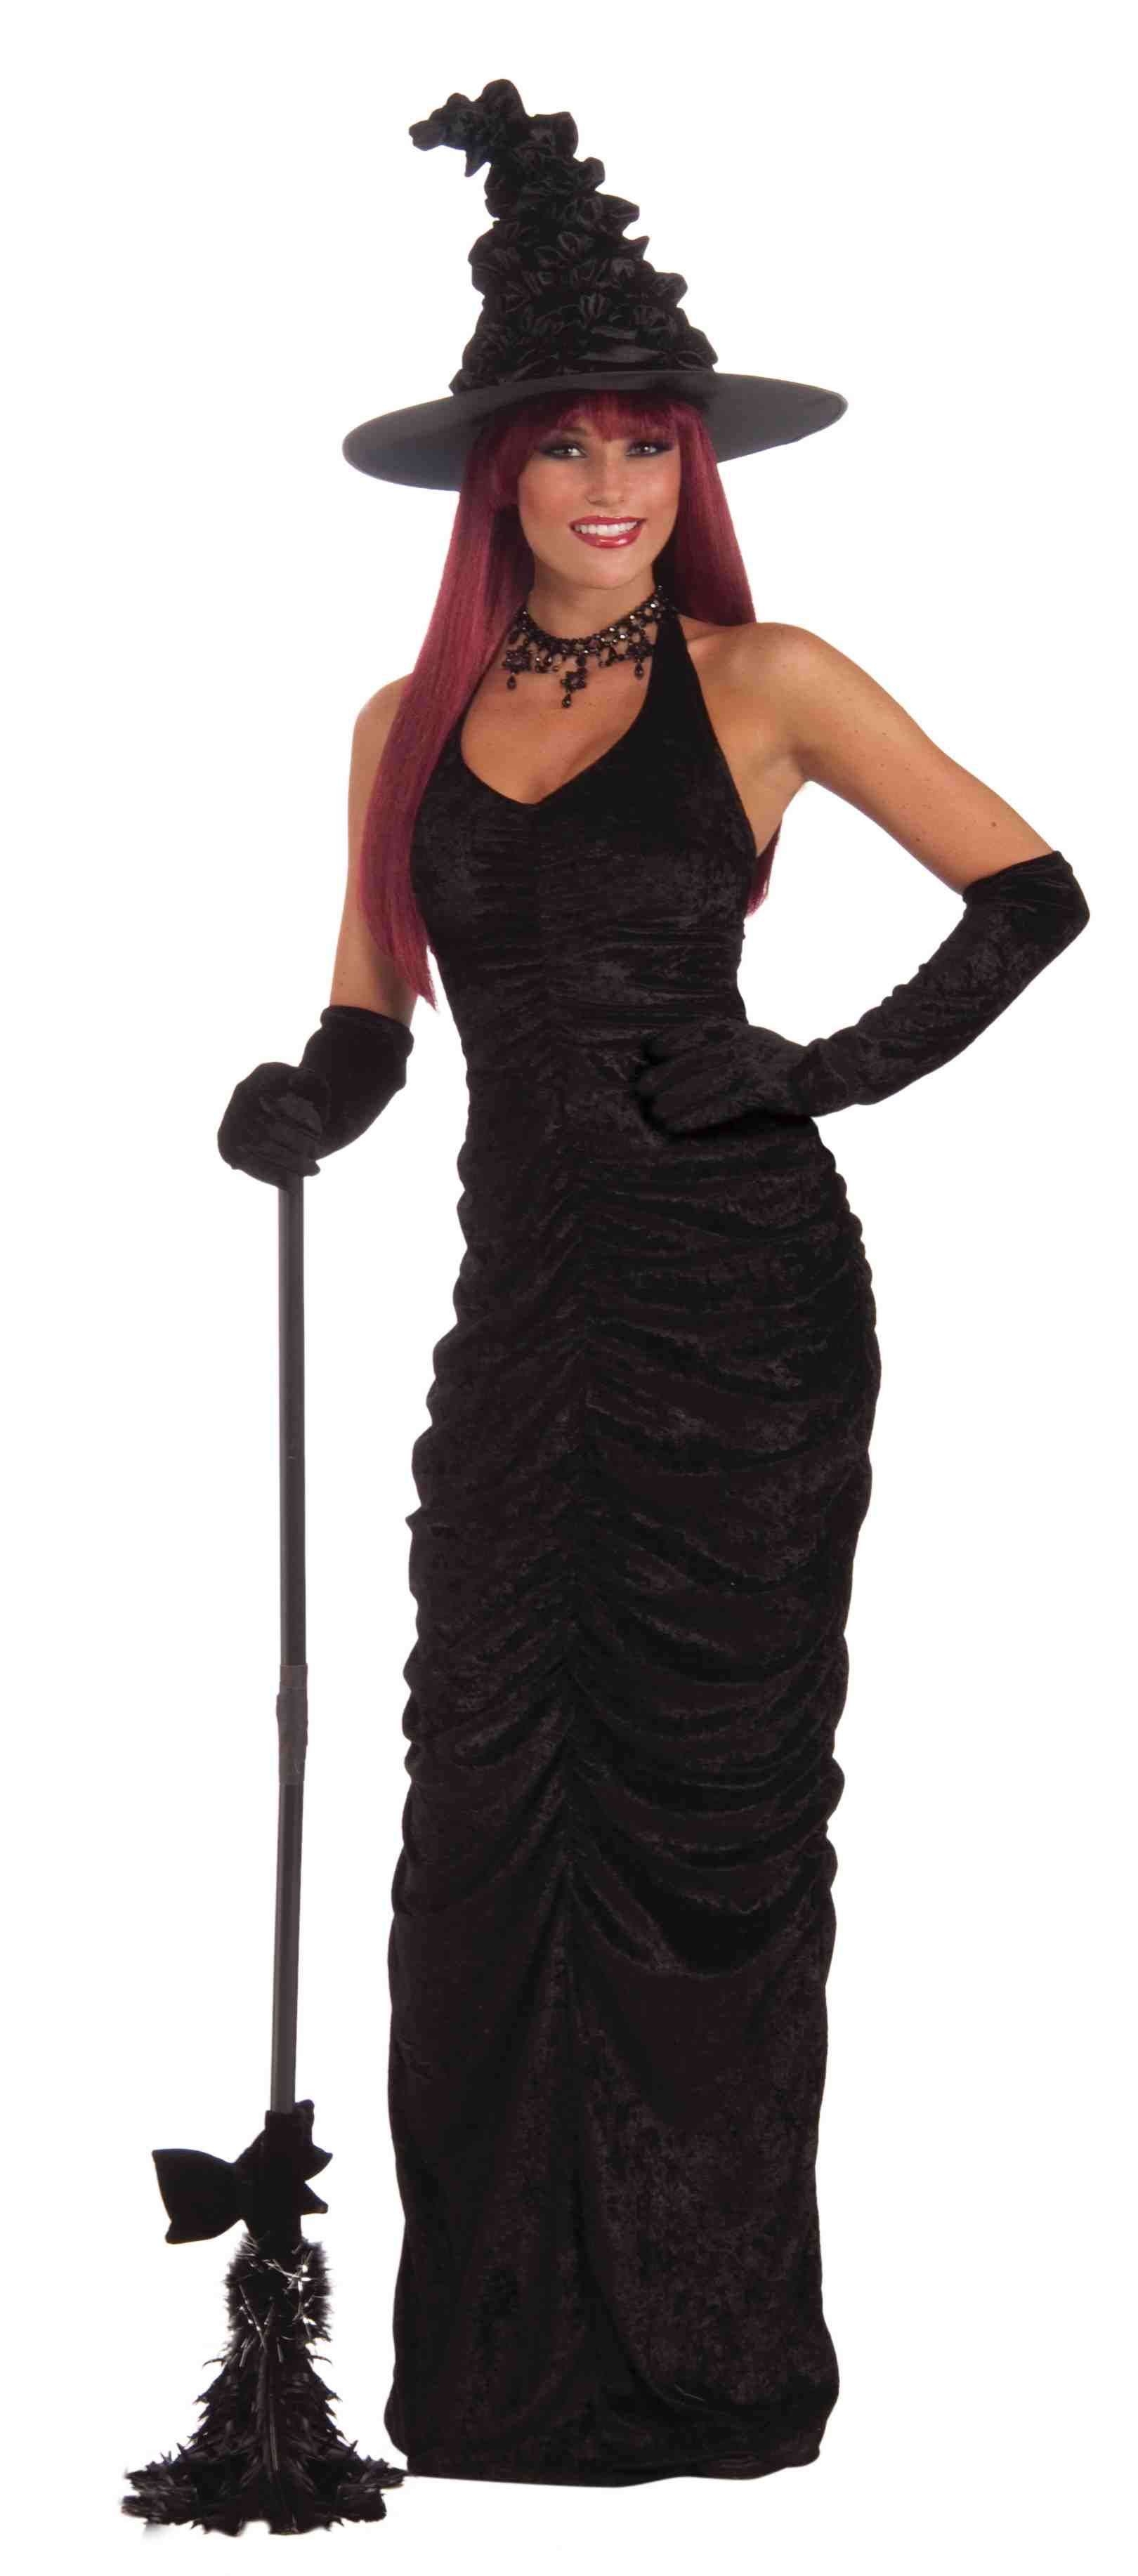 Black Magic Mistress Witch Costume | Witch costumes, Black magic ...